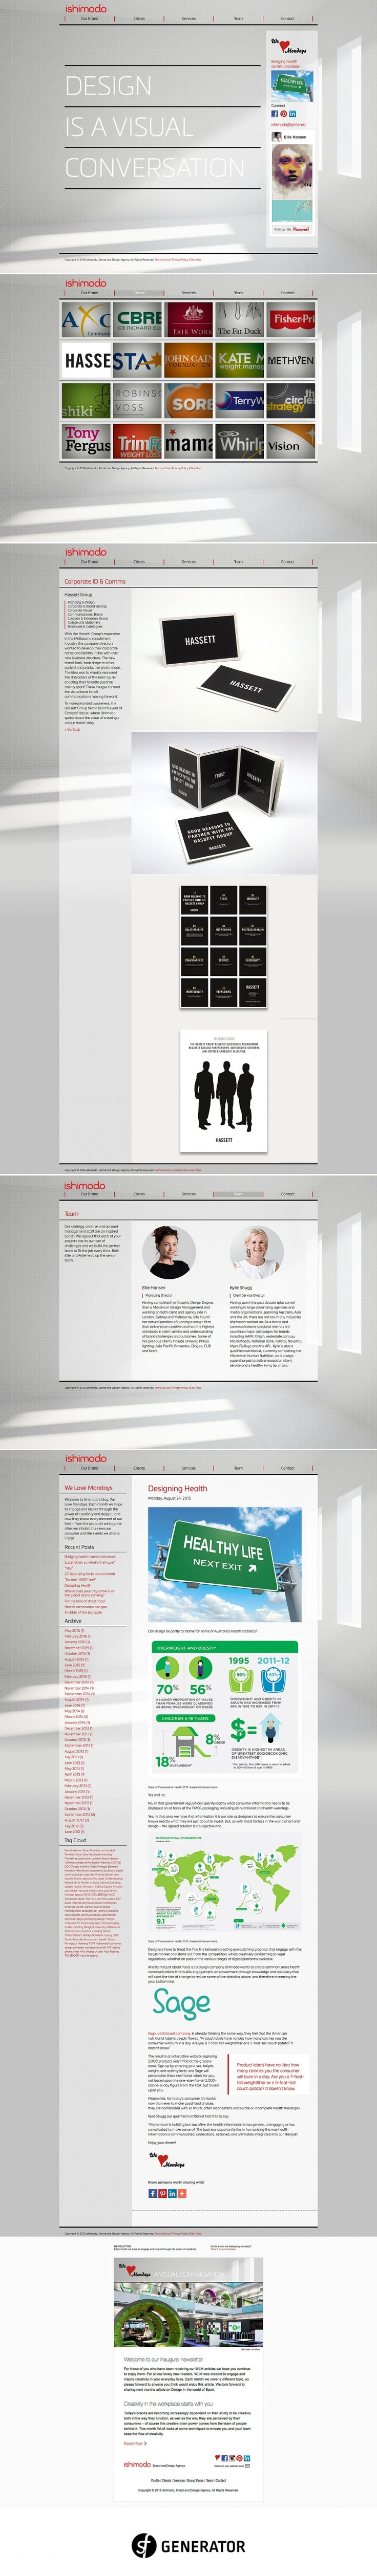 Web development of the Ishimodo brand agency website, portfolio and email template, using the Adobe Business Catalyst CMS (Content Management System). Provided with initial concepts from designer Anna Kortekaas, SF Generator help develop the specification for the website, interpreting the design and extrapolating it for full development. The driving aim for the project was to communicate the knowledge and strength of the Ishimodo team and it's services. - created via https://pinthemall.net